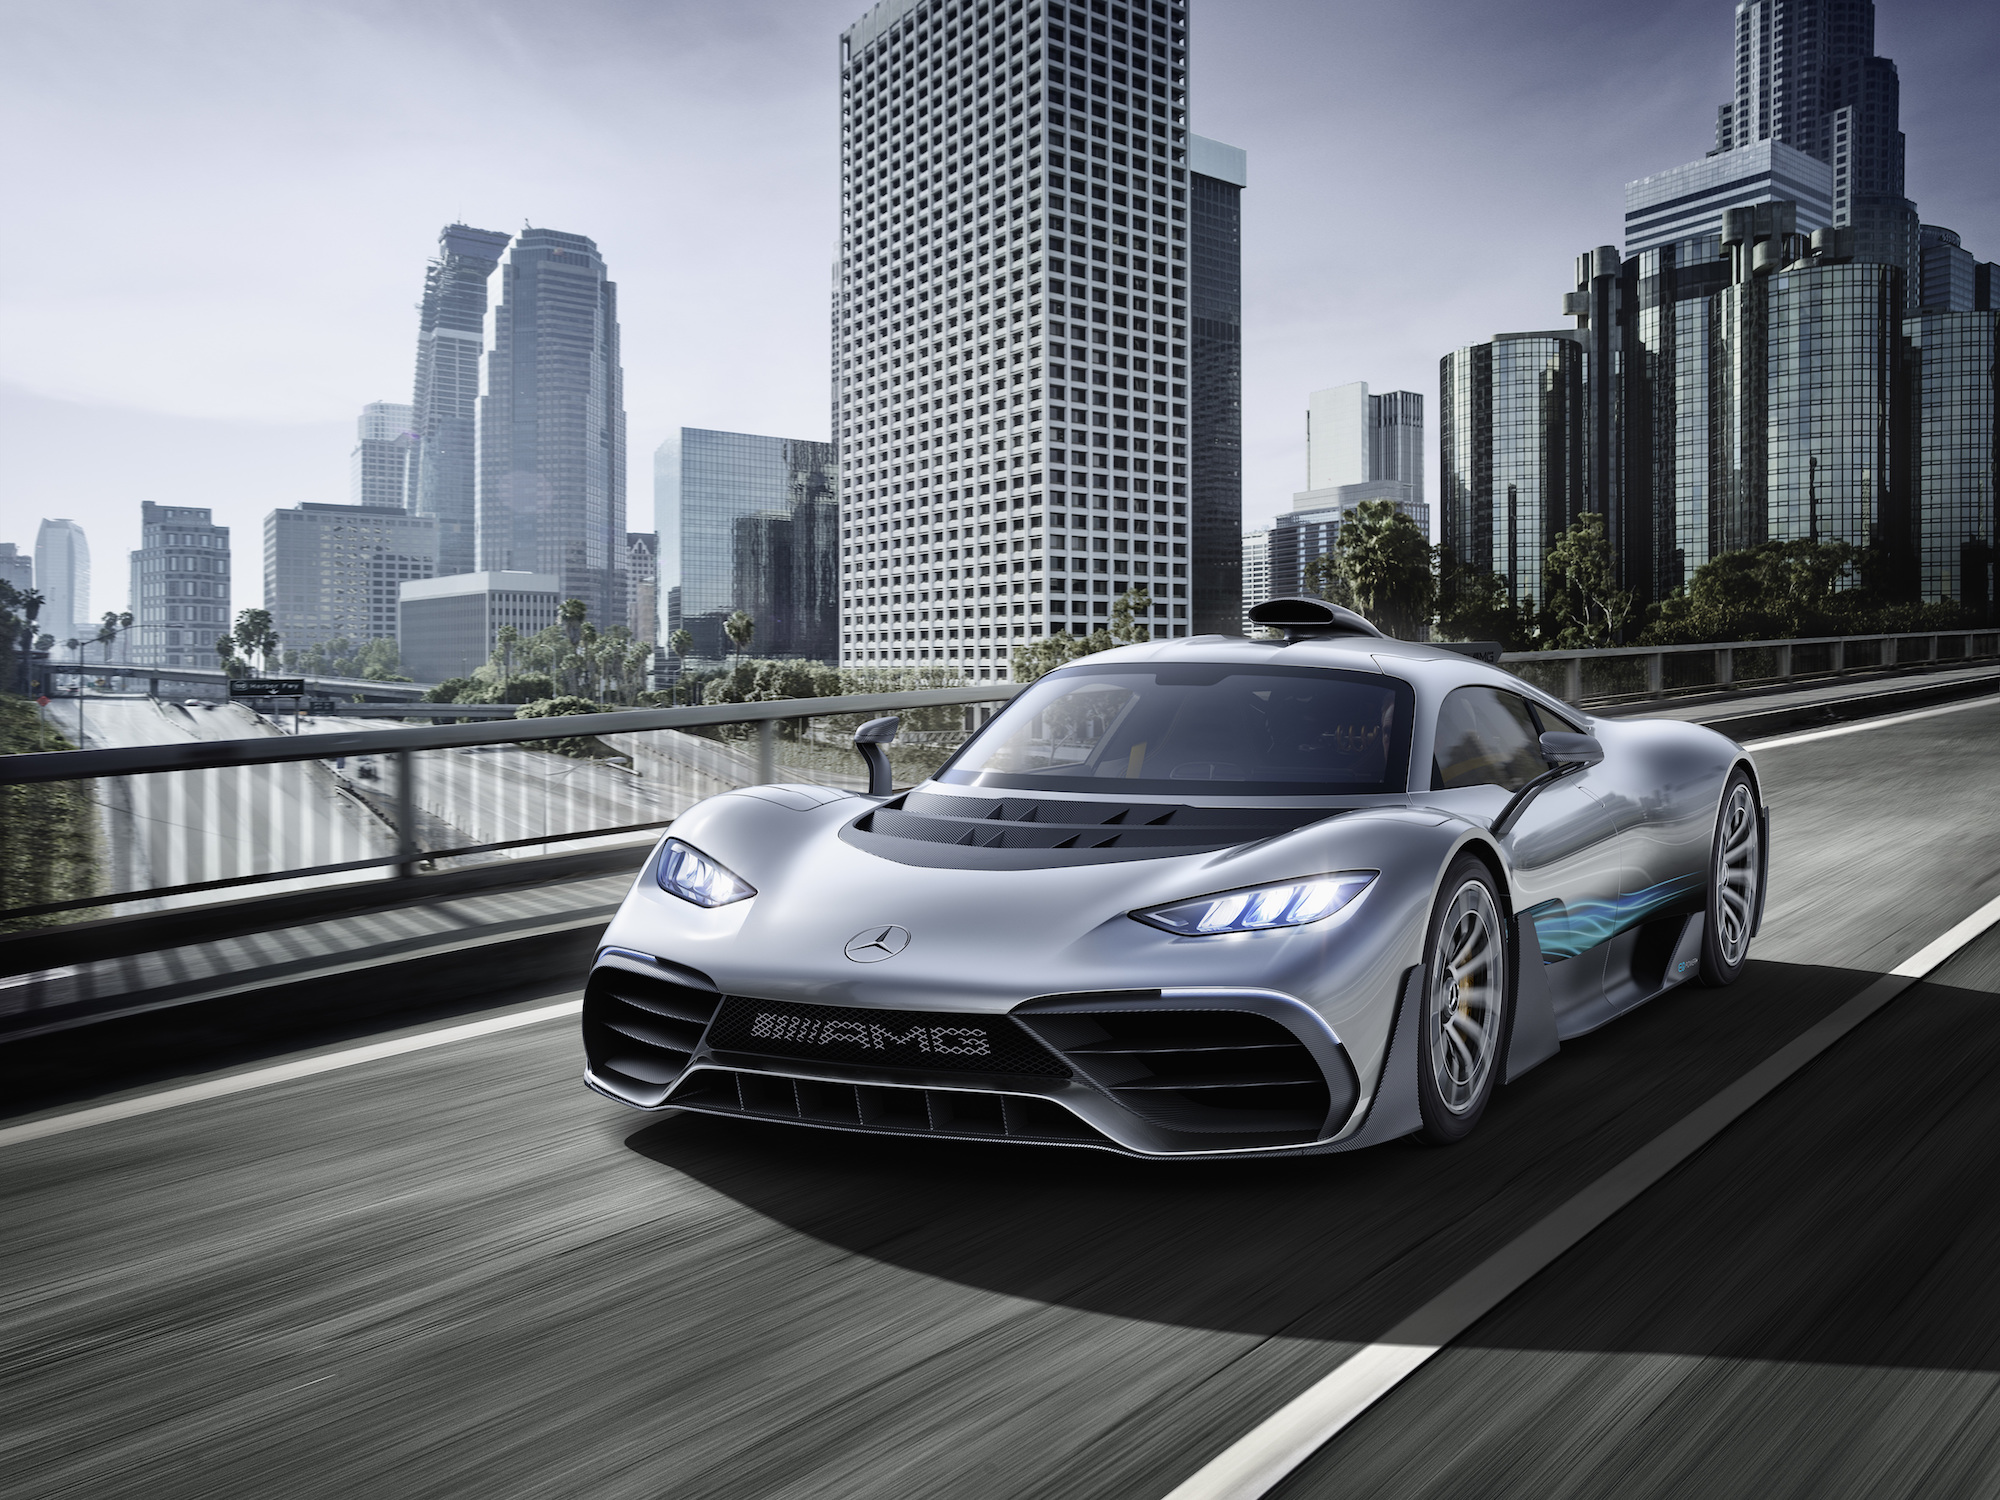 Showcar Mercedes-AMG Project ONE, zweisitziger Supersportwagen-mit modernster und effizientester Formel 1-Hybrid-Technologie, High Performance Plug-in Hybrid Antriebsstrang mit 1,6-Liter-V6-Turbobenzinmotor und vier Elektromotoren   Showcar Mercedes-AMG Project ONE, two-seater supersports car with the very latest and efficient, fully-fledged Formula 1 hybrid technology, high-performance plug-in hybrid drive system with 1.6 1.6-litre V6 turbocharged petrol engine and four electric motors